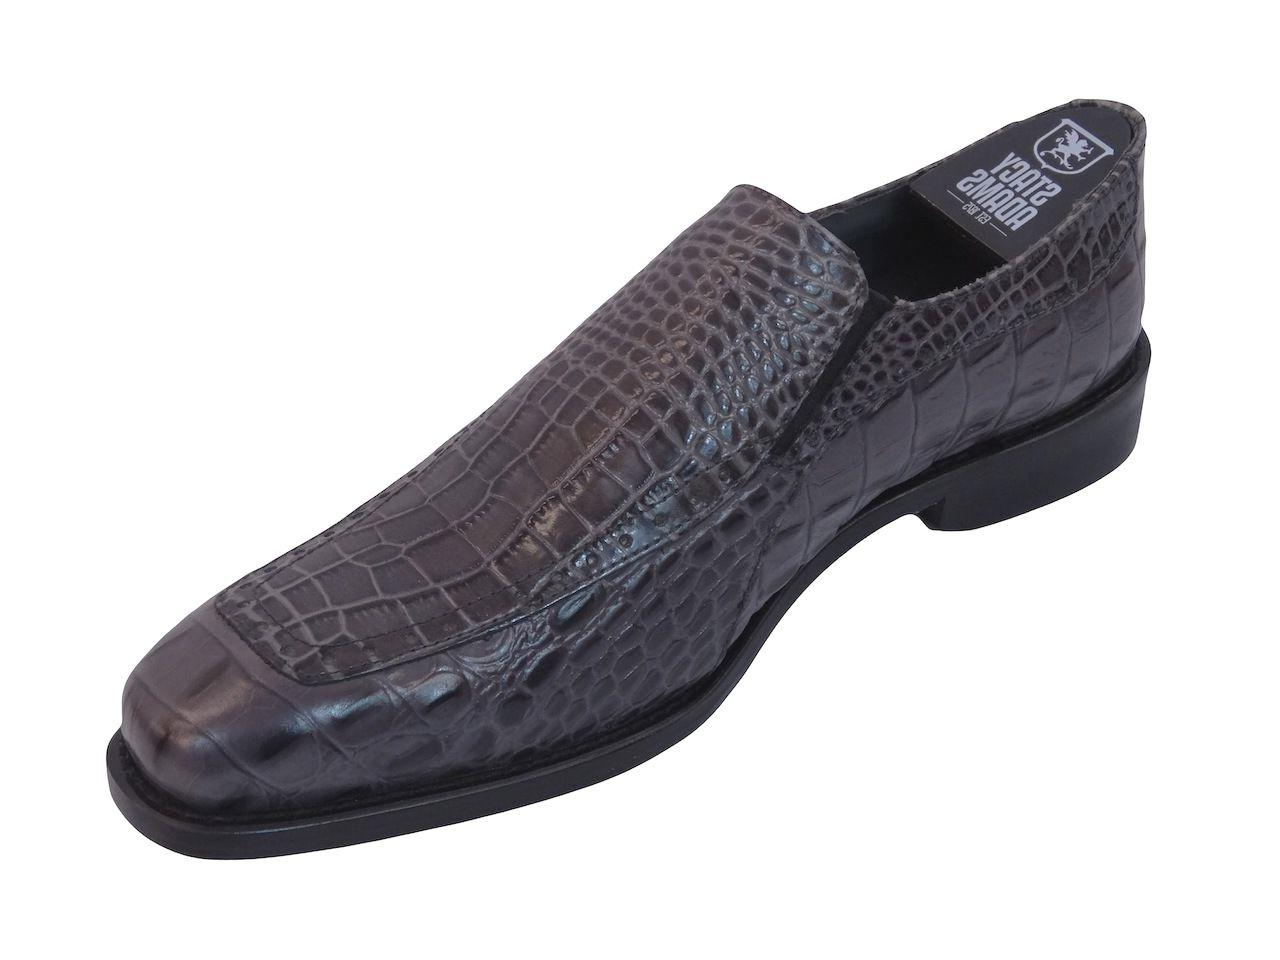 Shoes PARISI 24903 Gray Moc Loafer 8